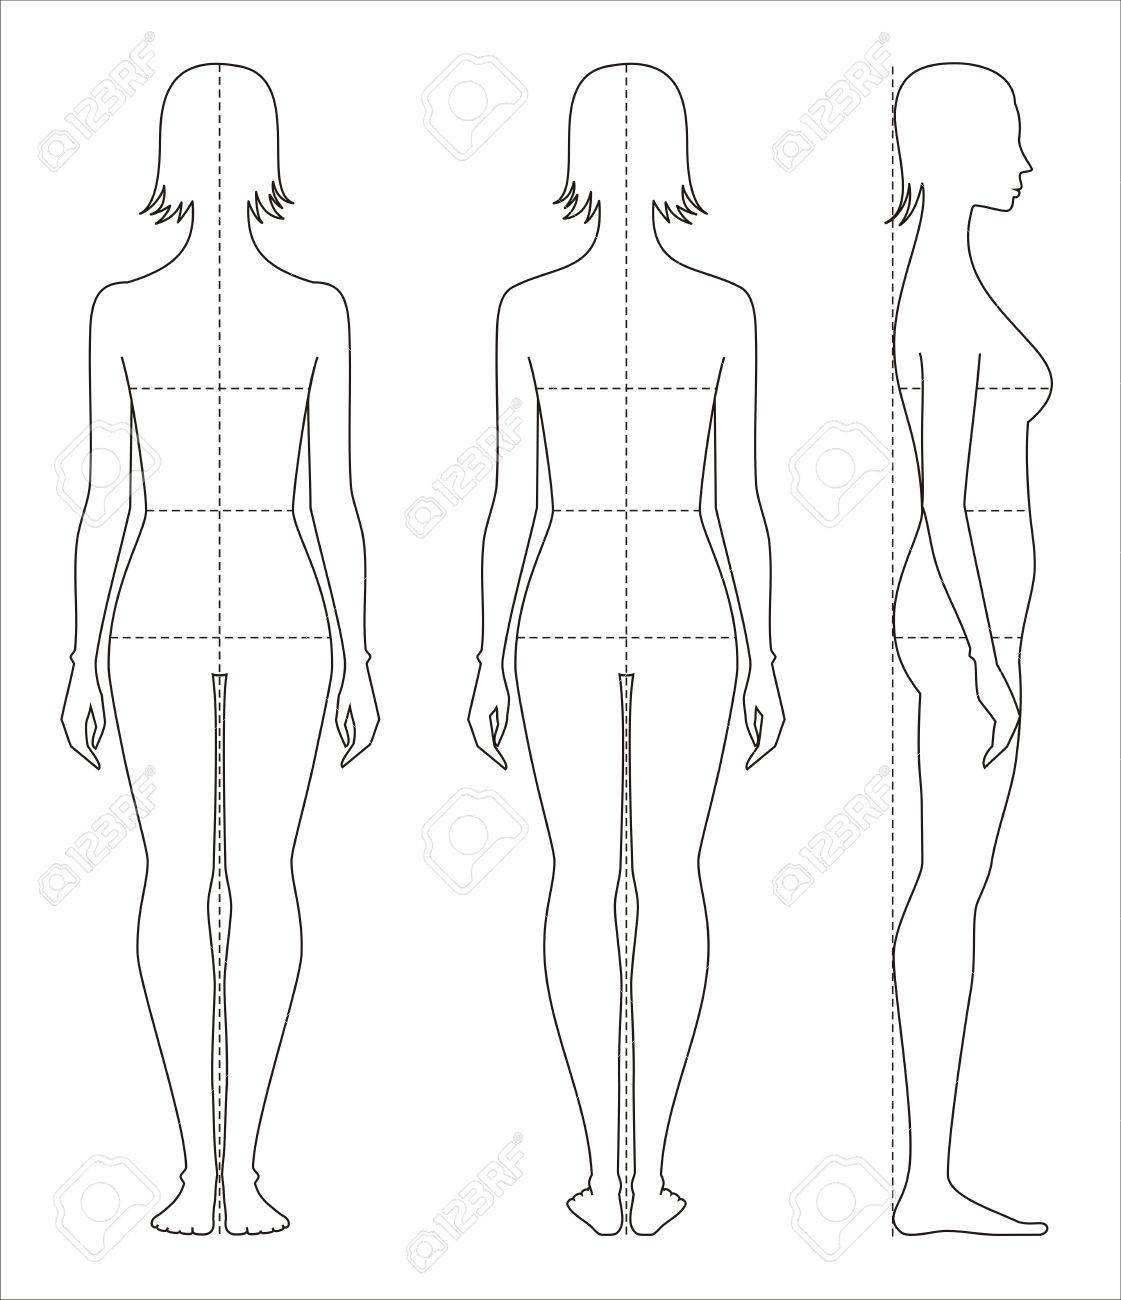 vector vector illustration of womens body proportions and measurements for clothing design and sewing